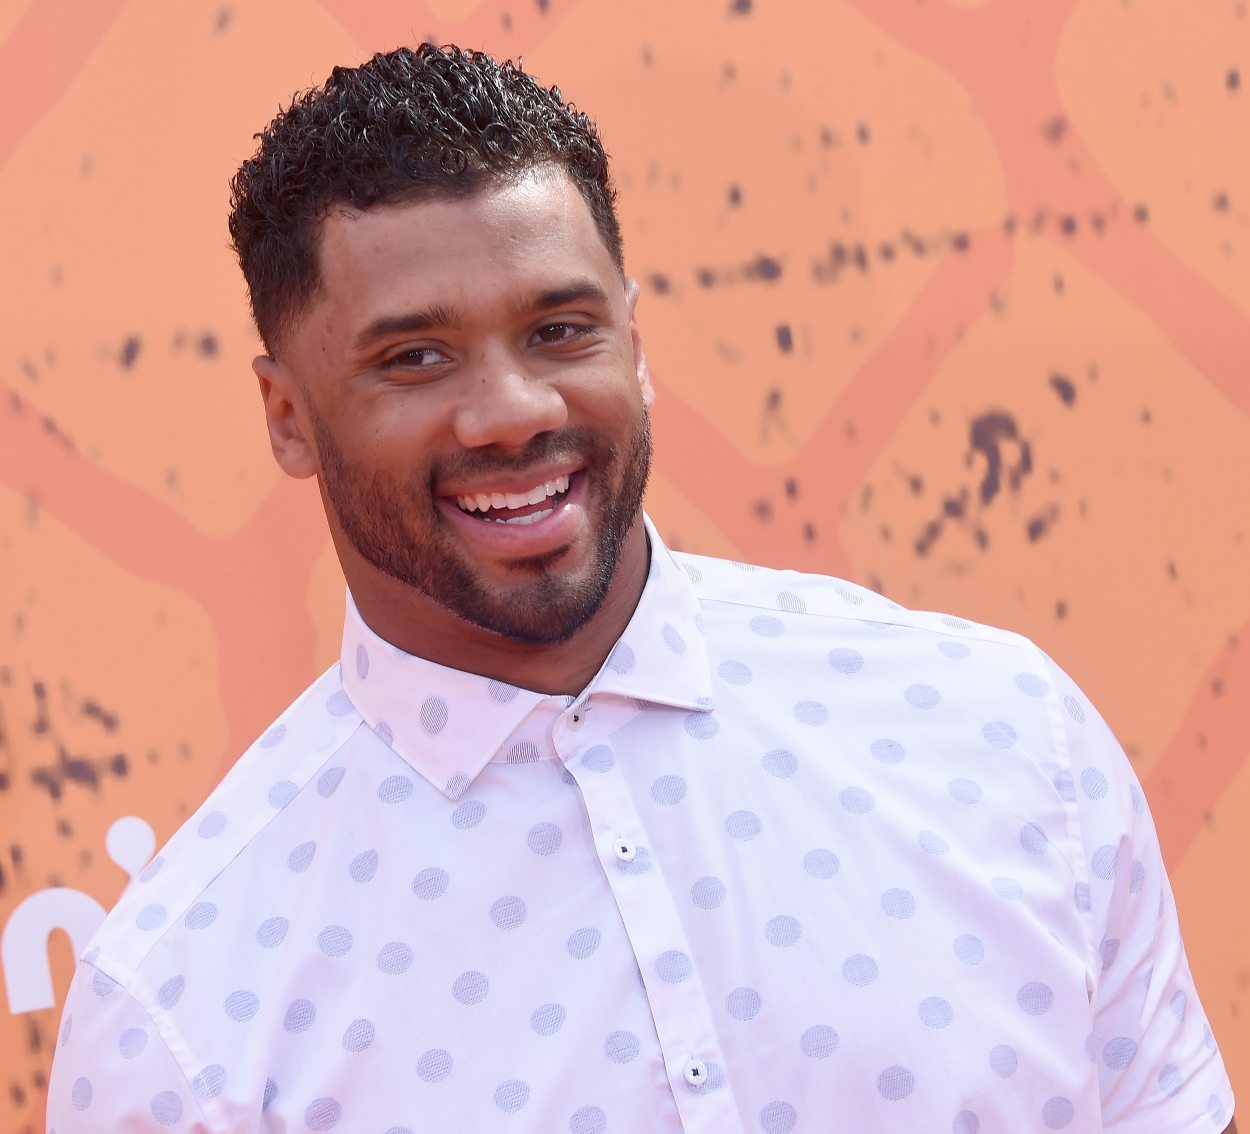 Russell Wilson Once Launched an App That Was Backed by Jeff Bezos